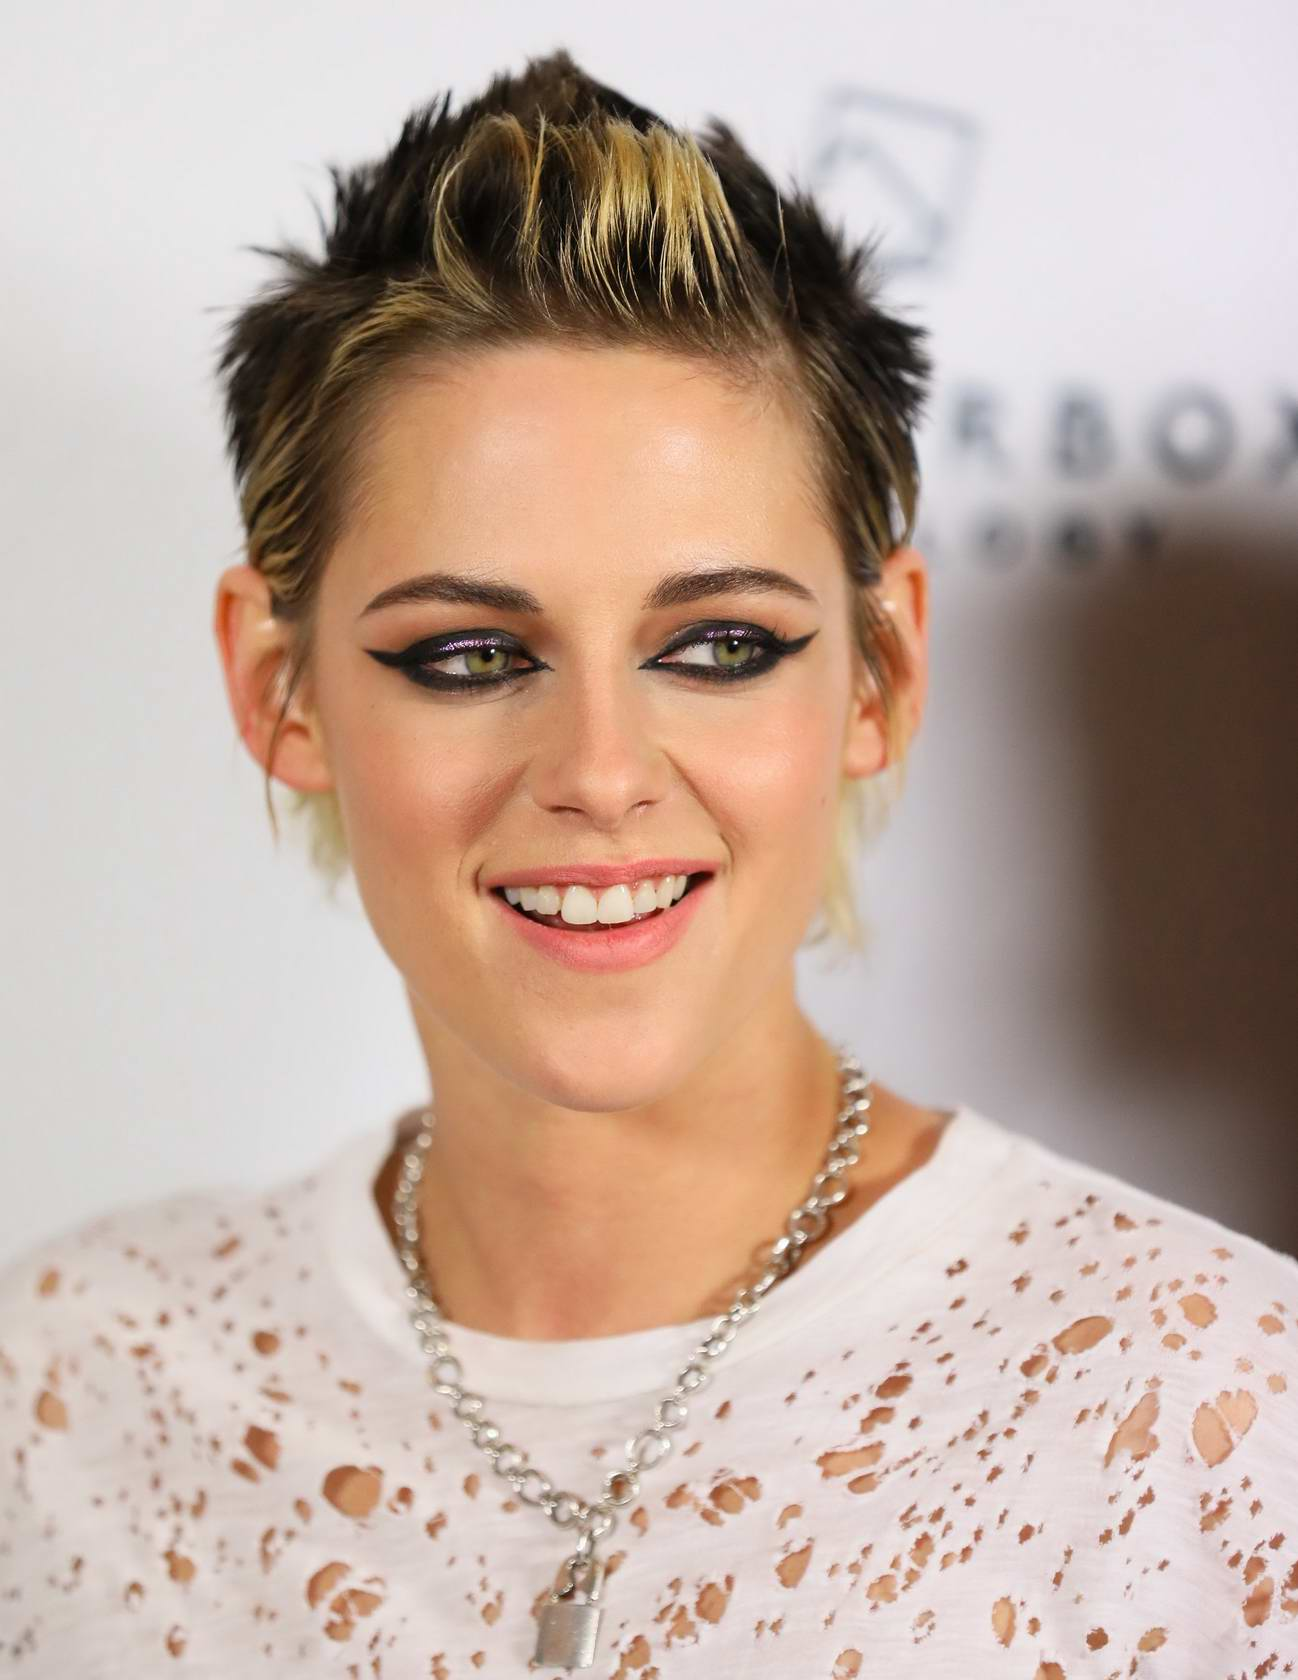 Kristen Stewart at the premiere of 'Come Swim' in Los Angeles